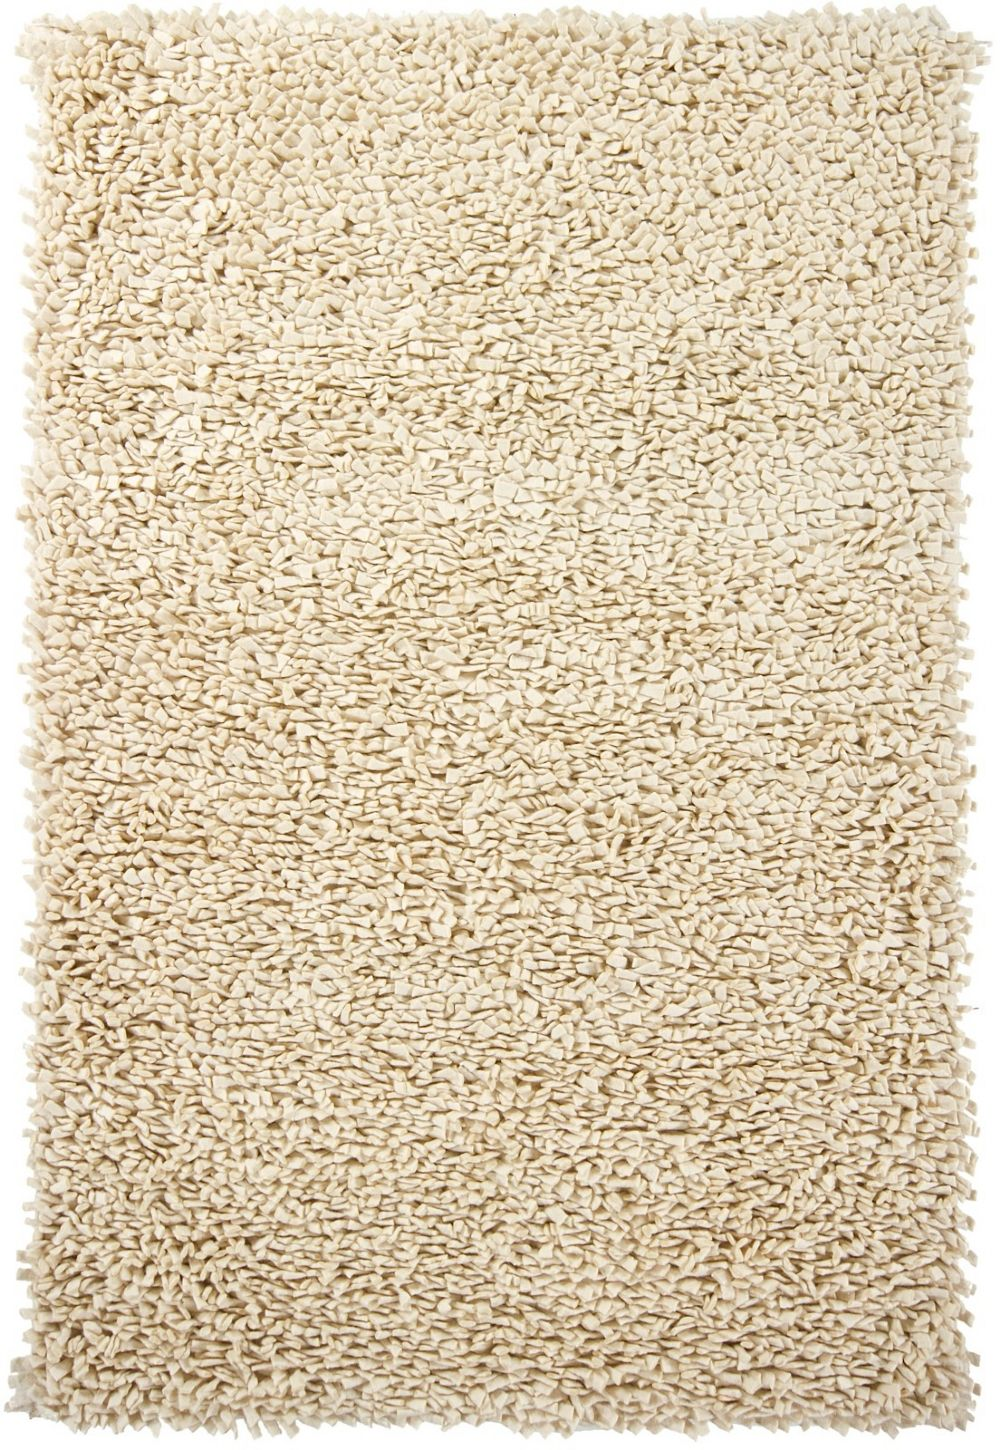 chandra azzura contemporary area rug collection